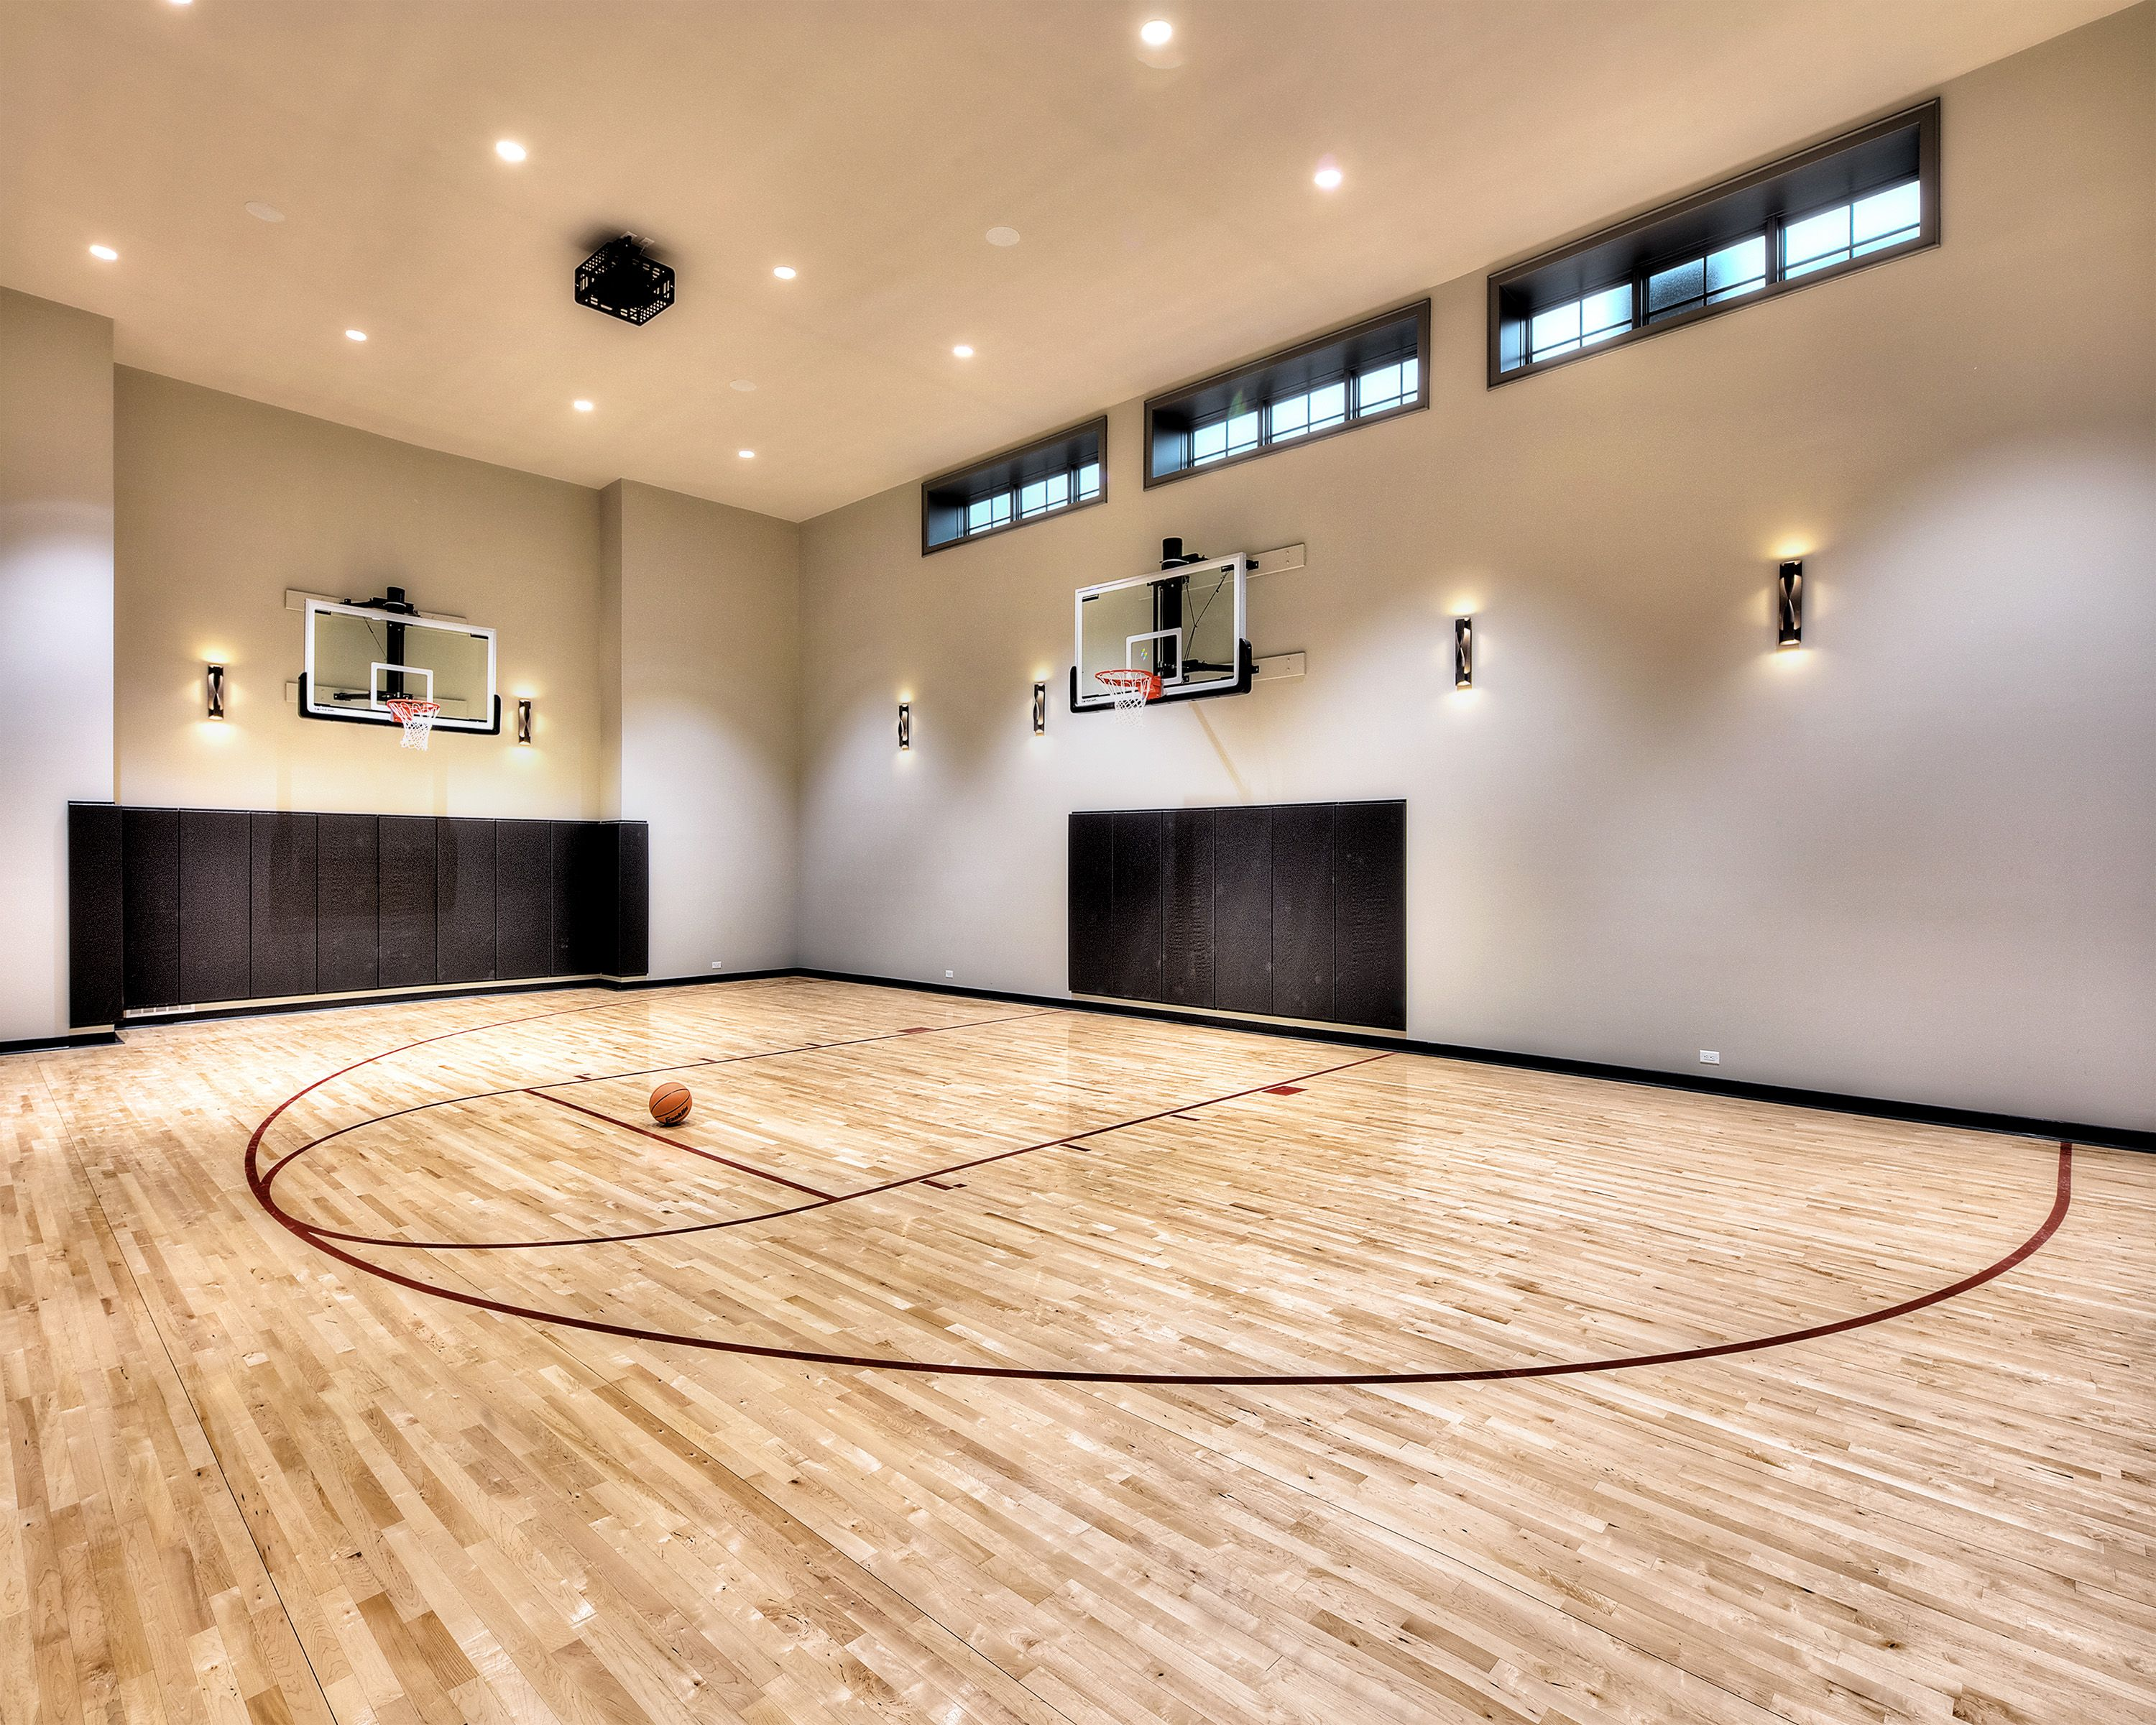 Indoor Basketball Court Home Basketball Court Basketball Room Indoor Basketball Court